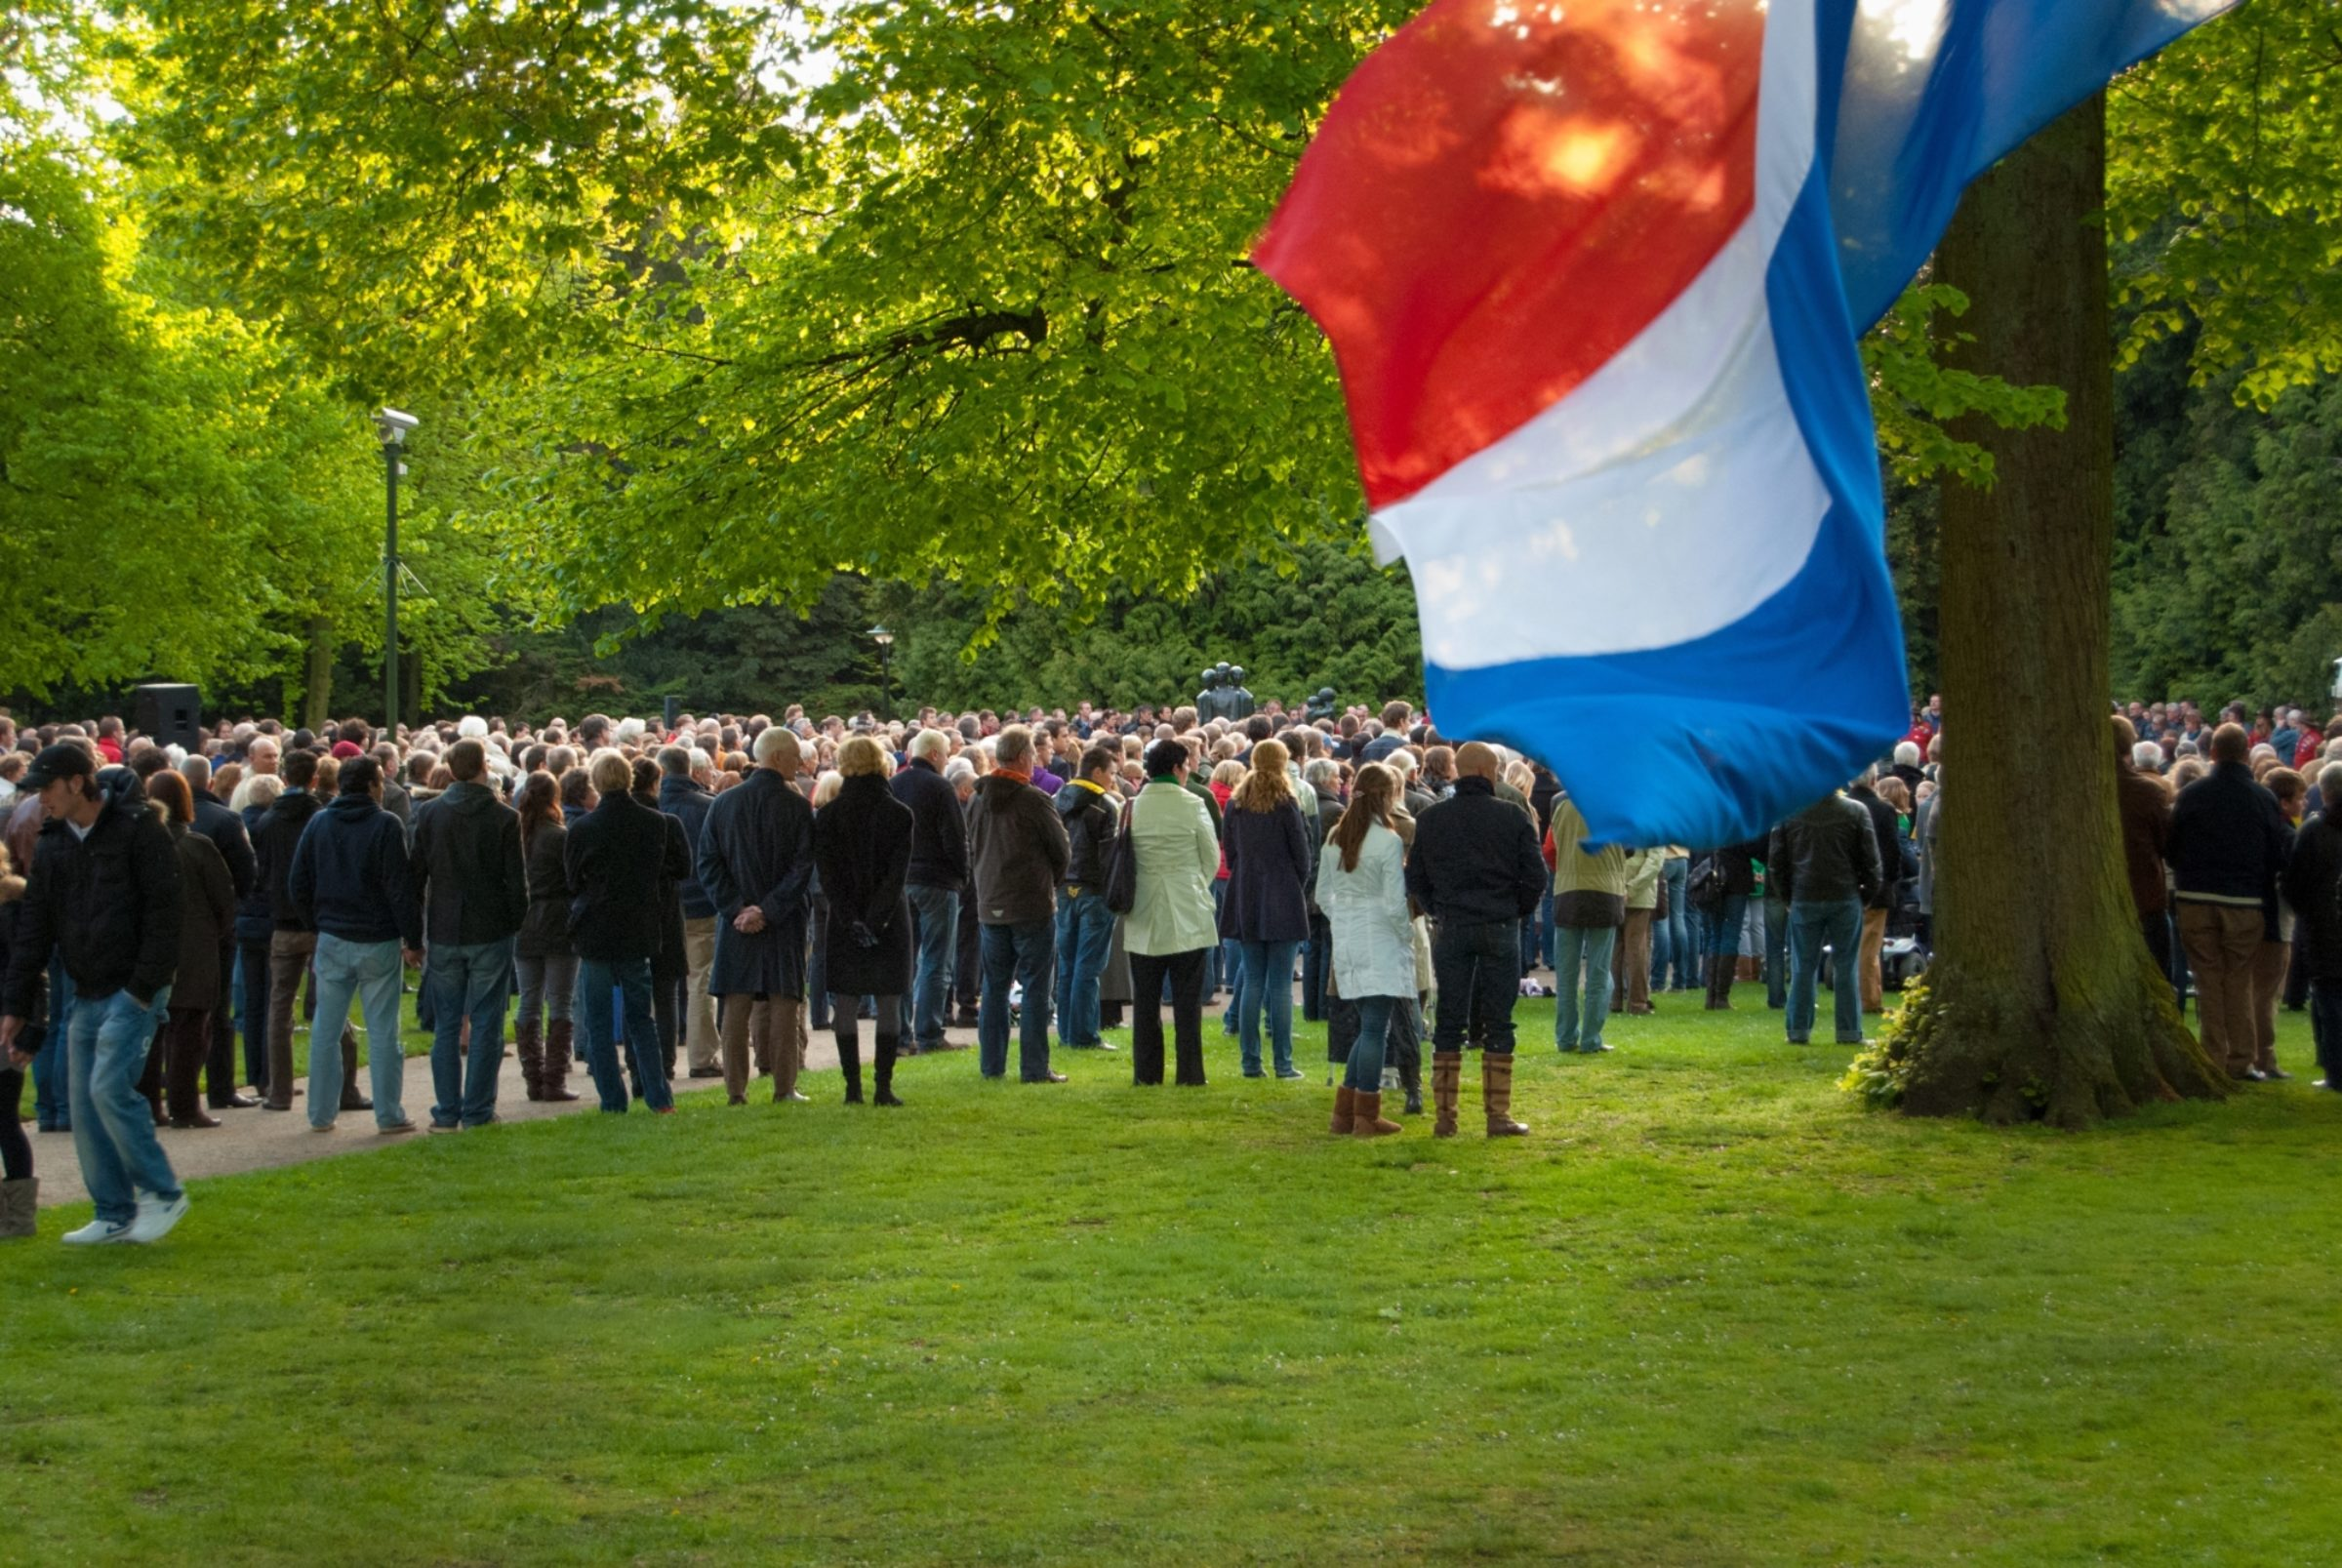 Dodenherdenking 4 mei Enschede 35hsuuarle